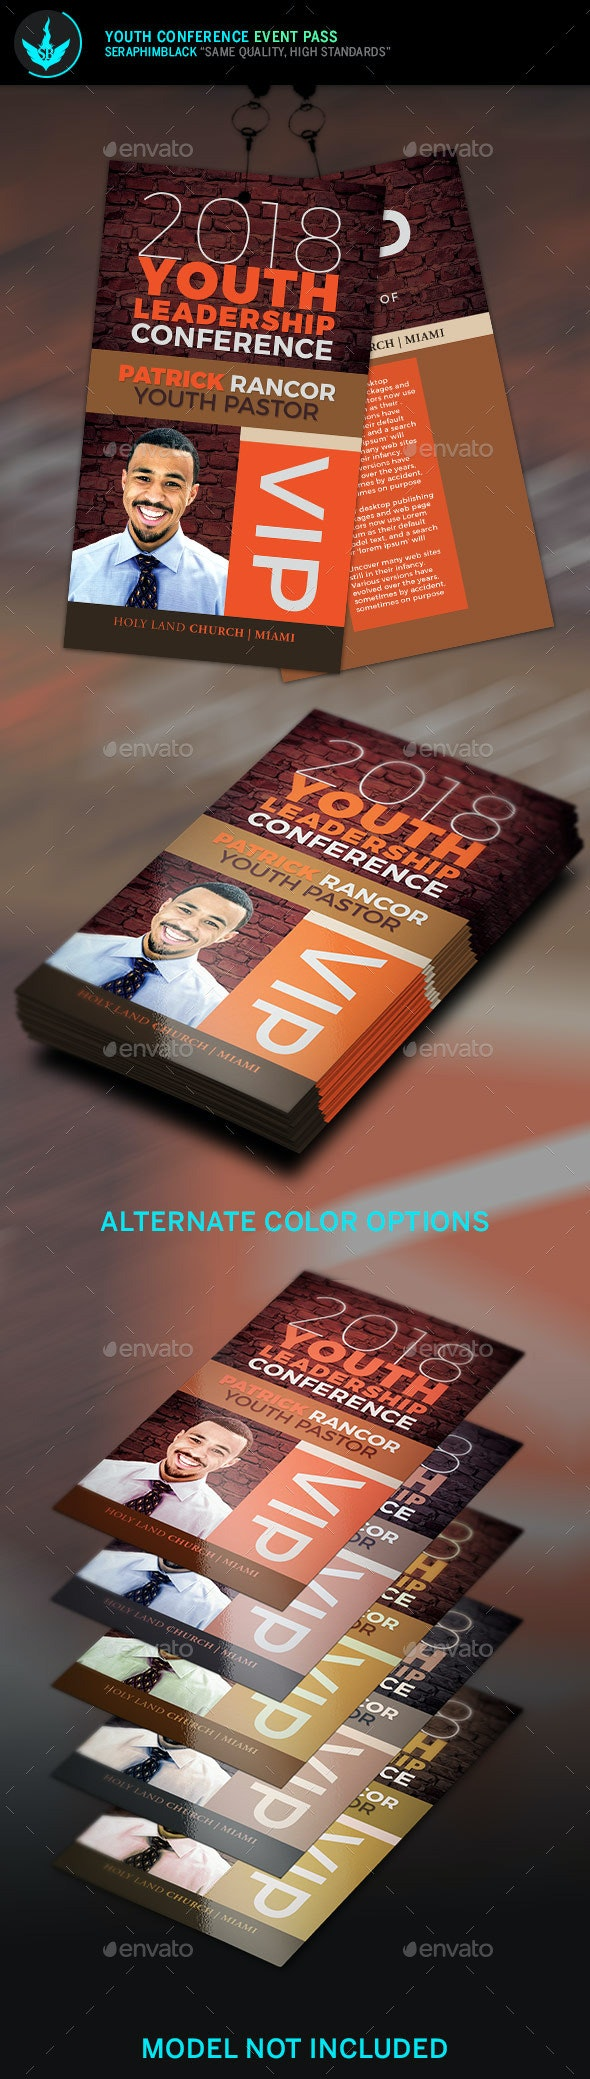 Youth Conference Event Pass Template - Miscellaneous Print Templates